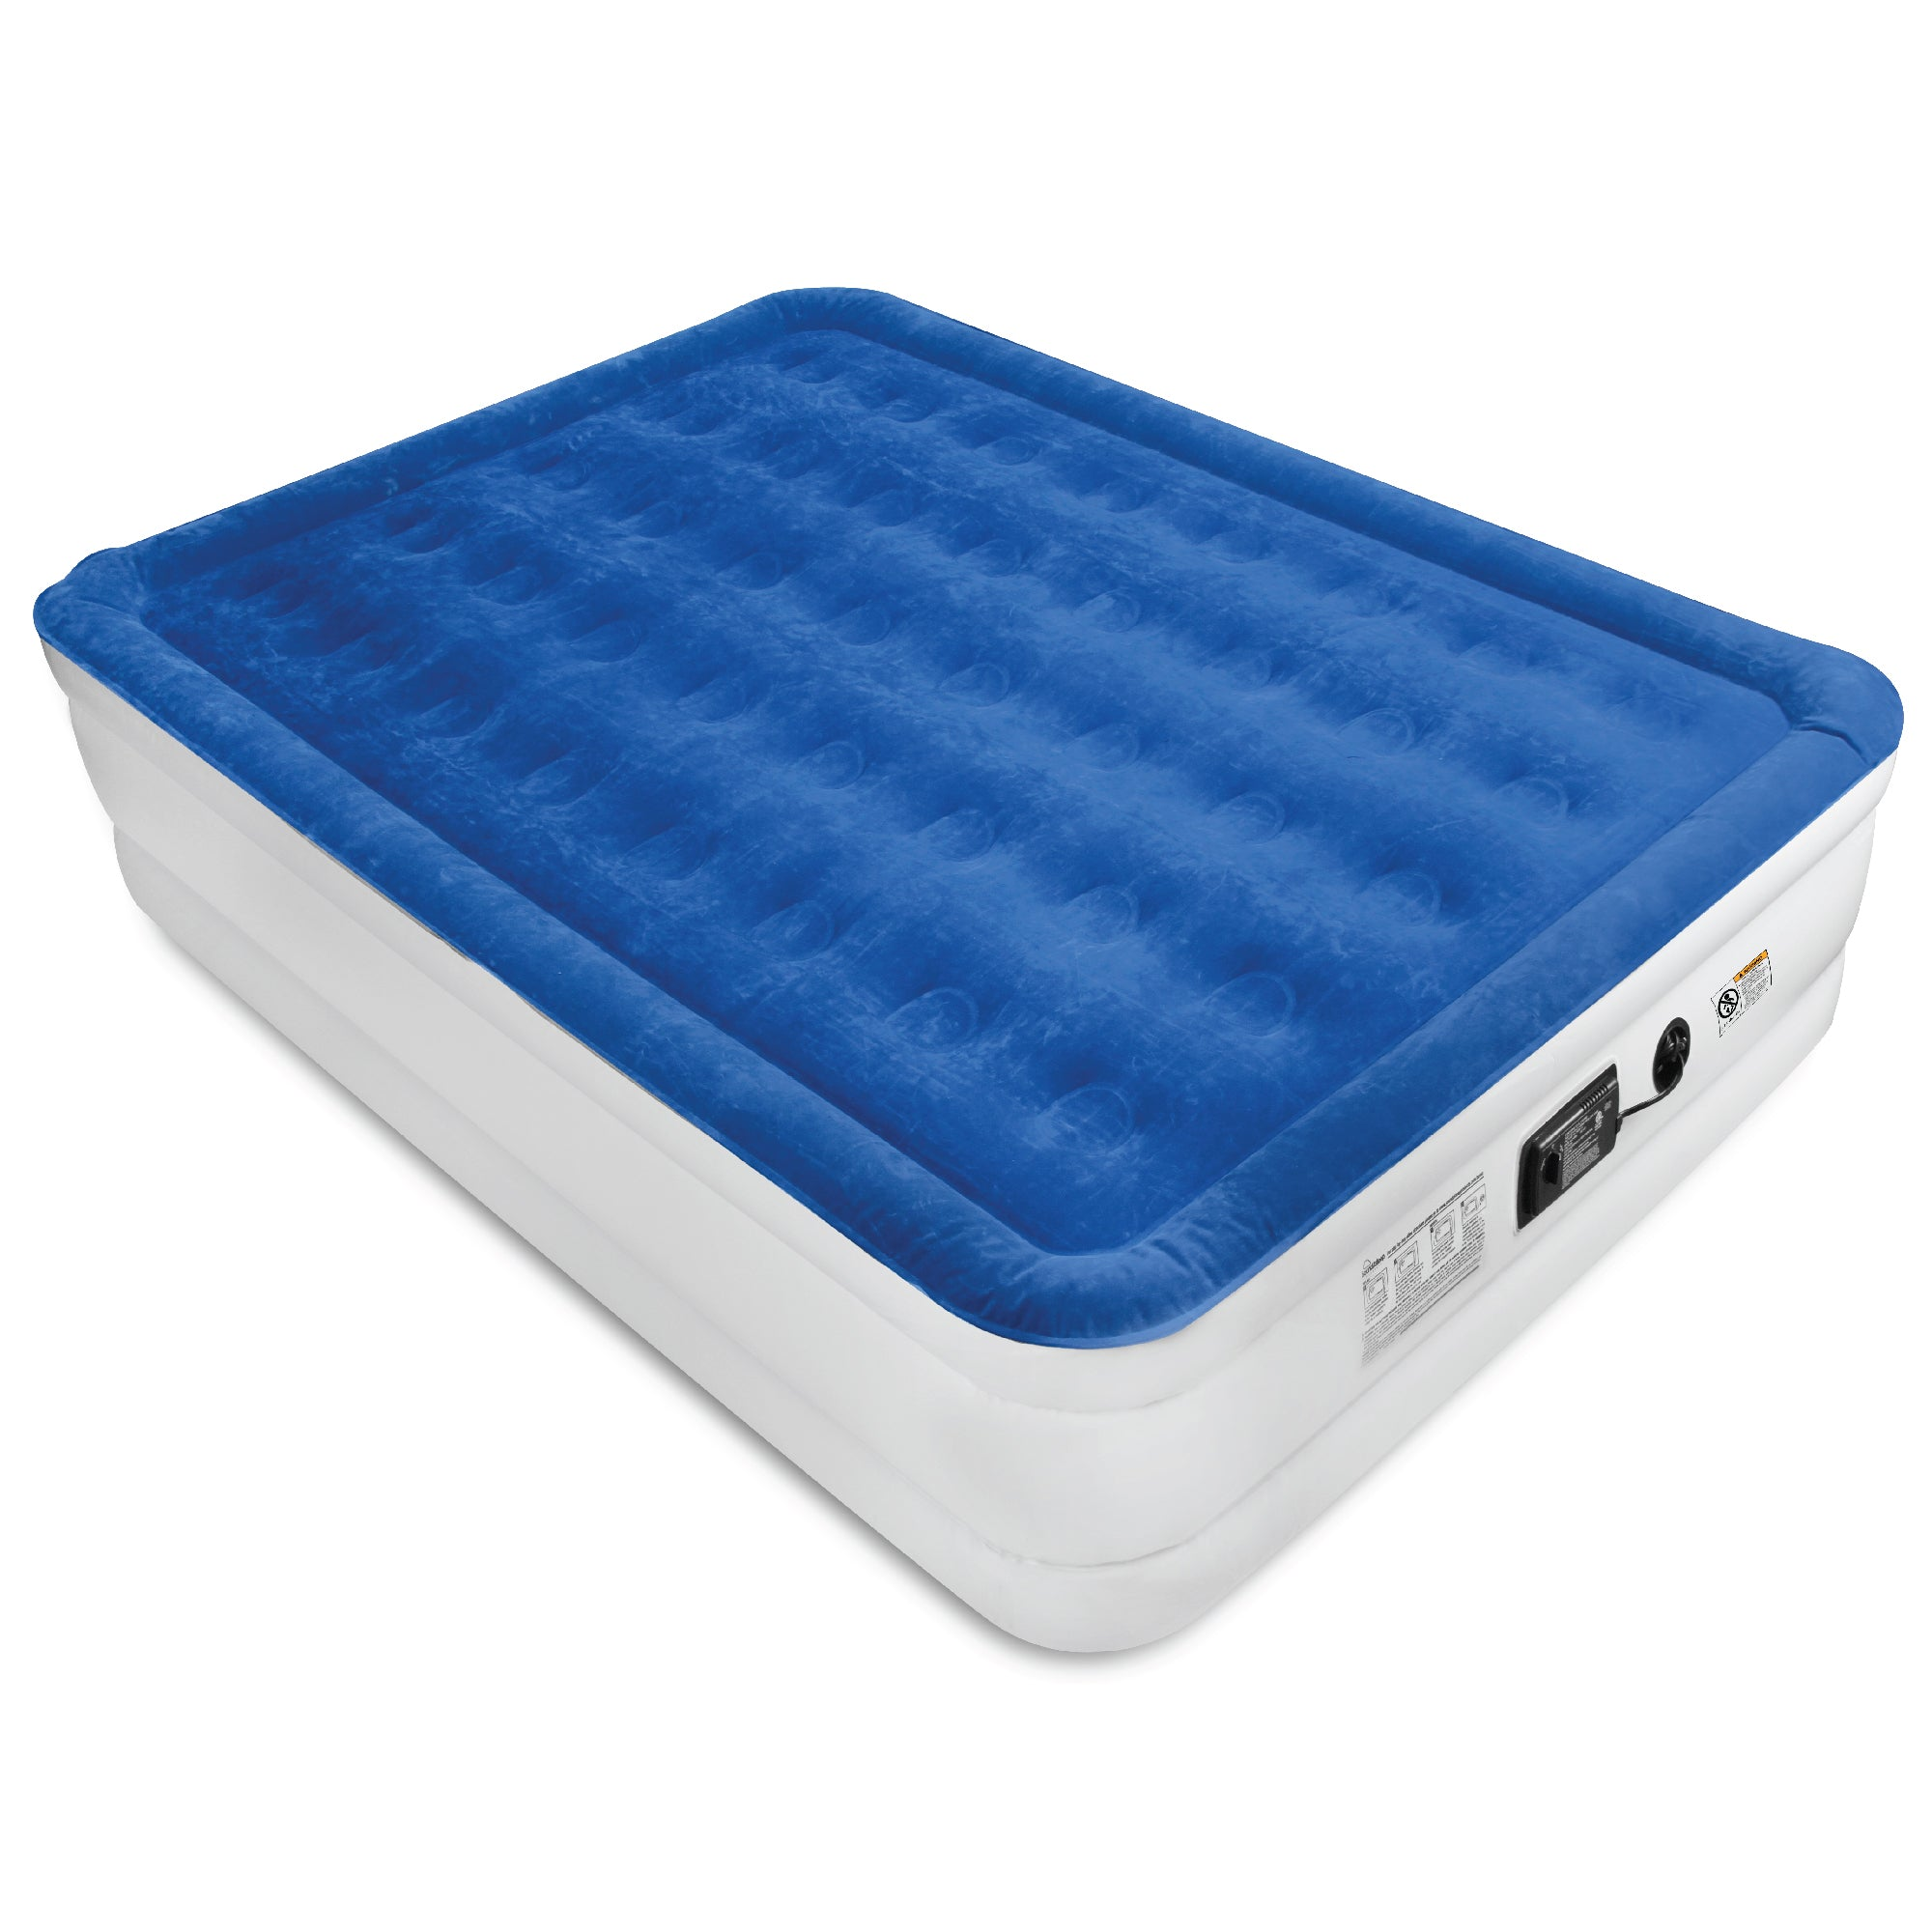 Some Known Incorrect Statements About Full Size Air Mattress